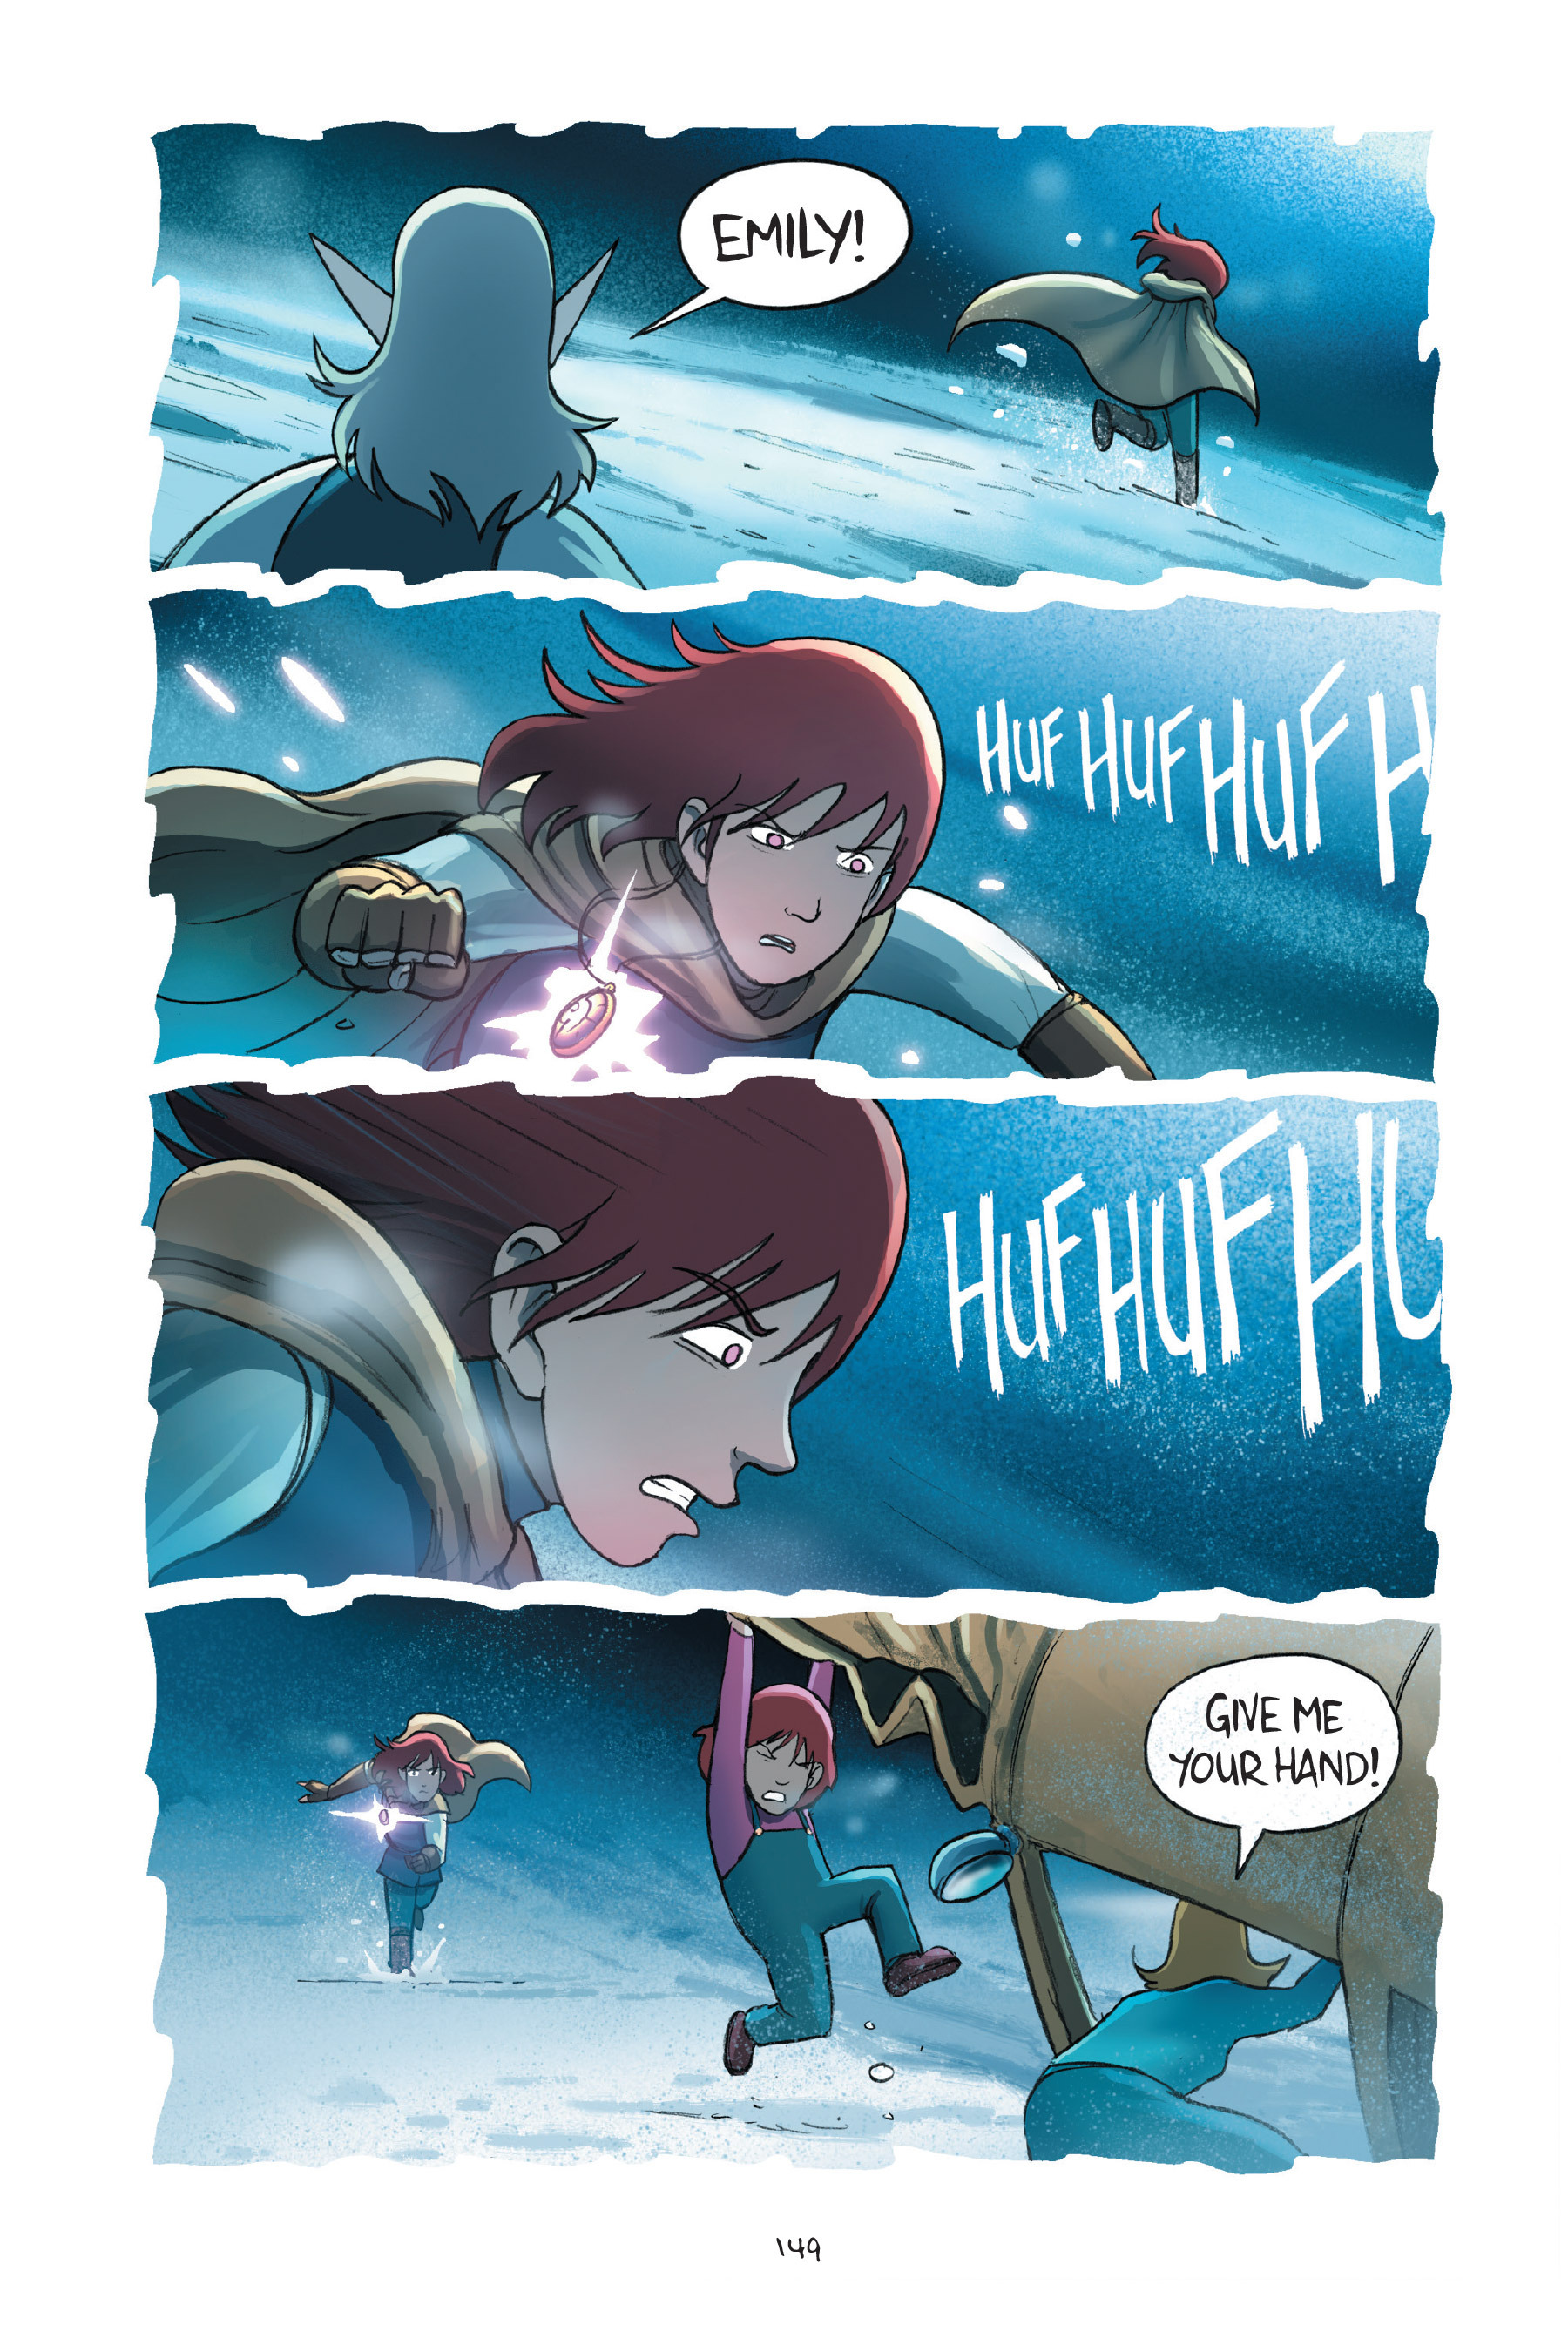 Read online Amulet comic -  Issue #7 - 149